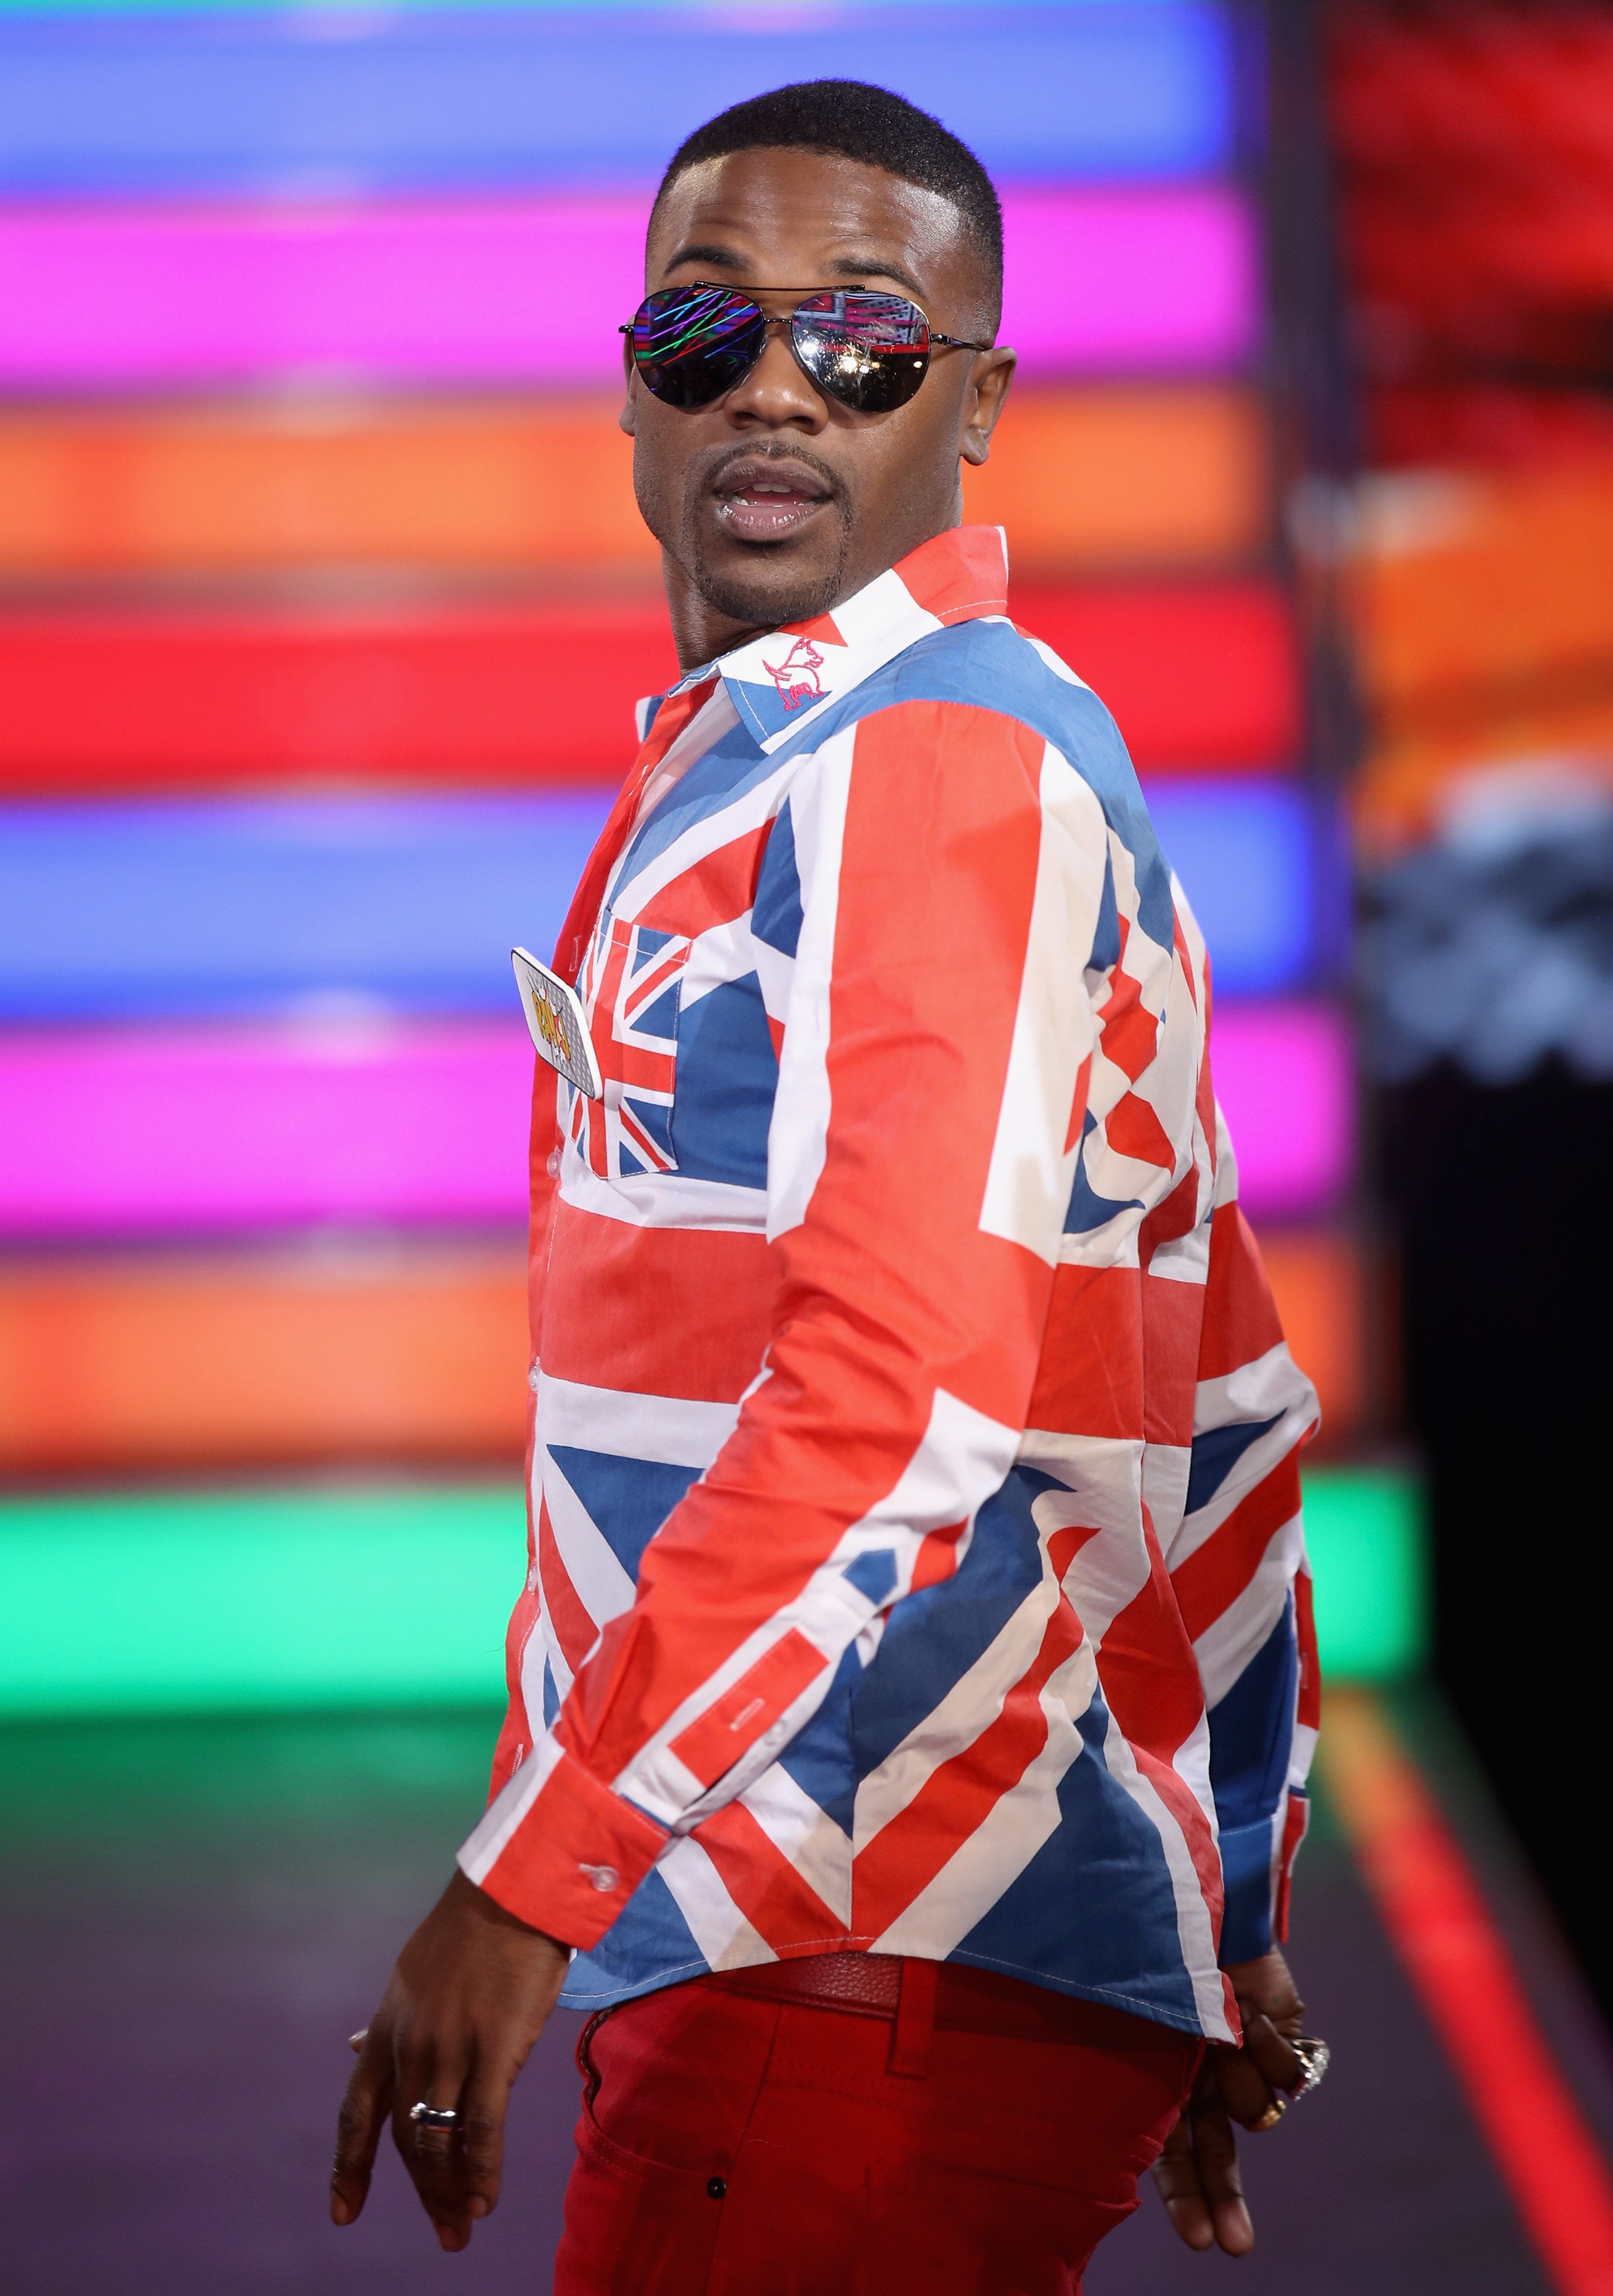 Ray J Quits 'CBB' And Is Threatening To Sue Producers Over Toothache